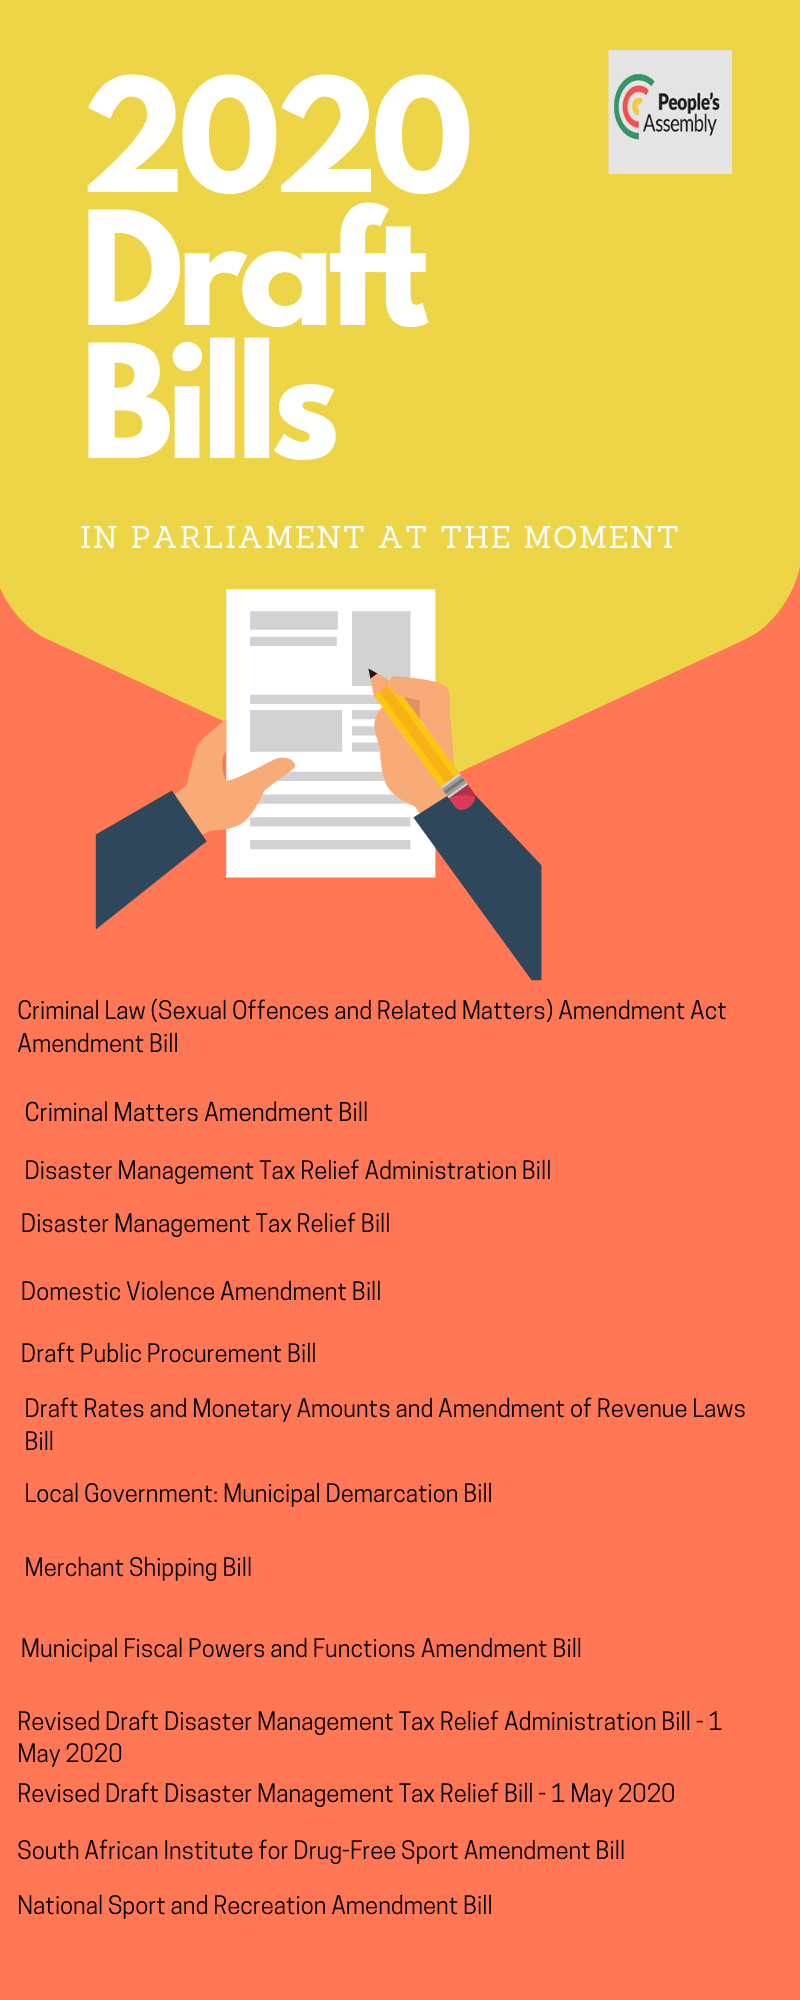 2020 Draft Bills